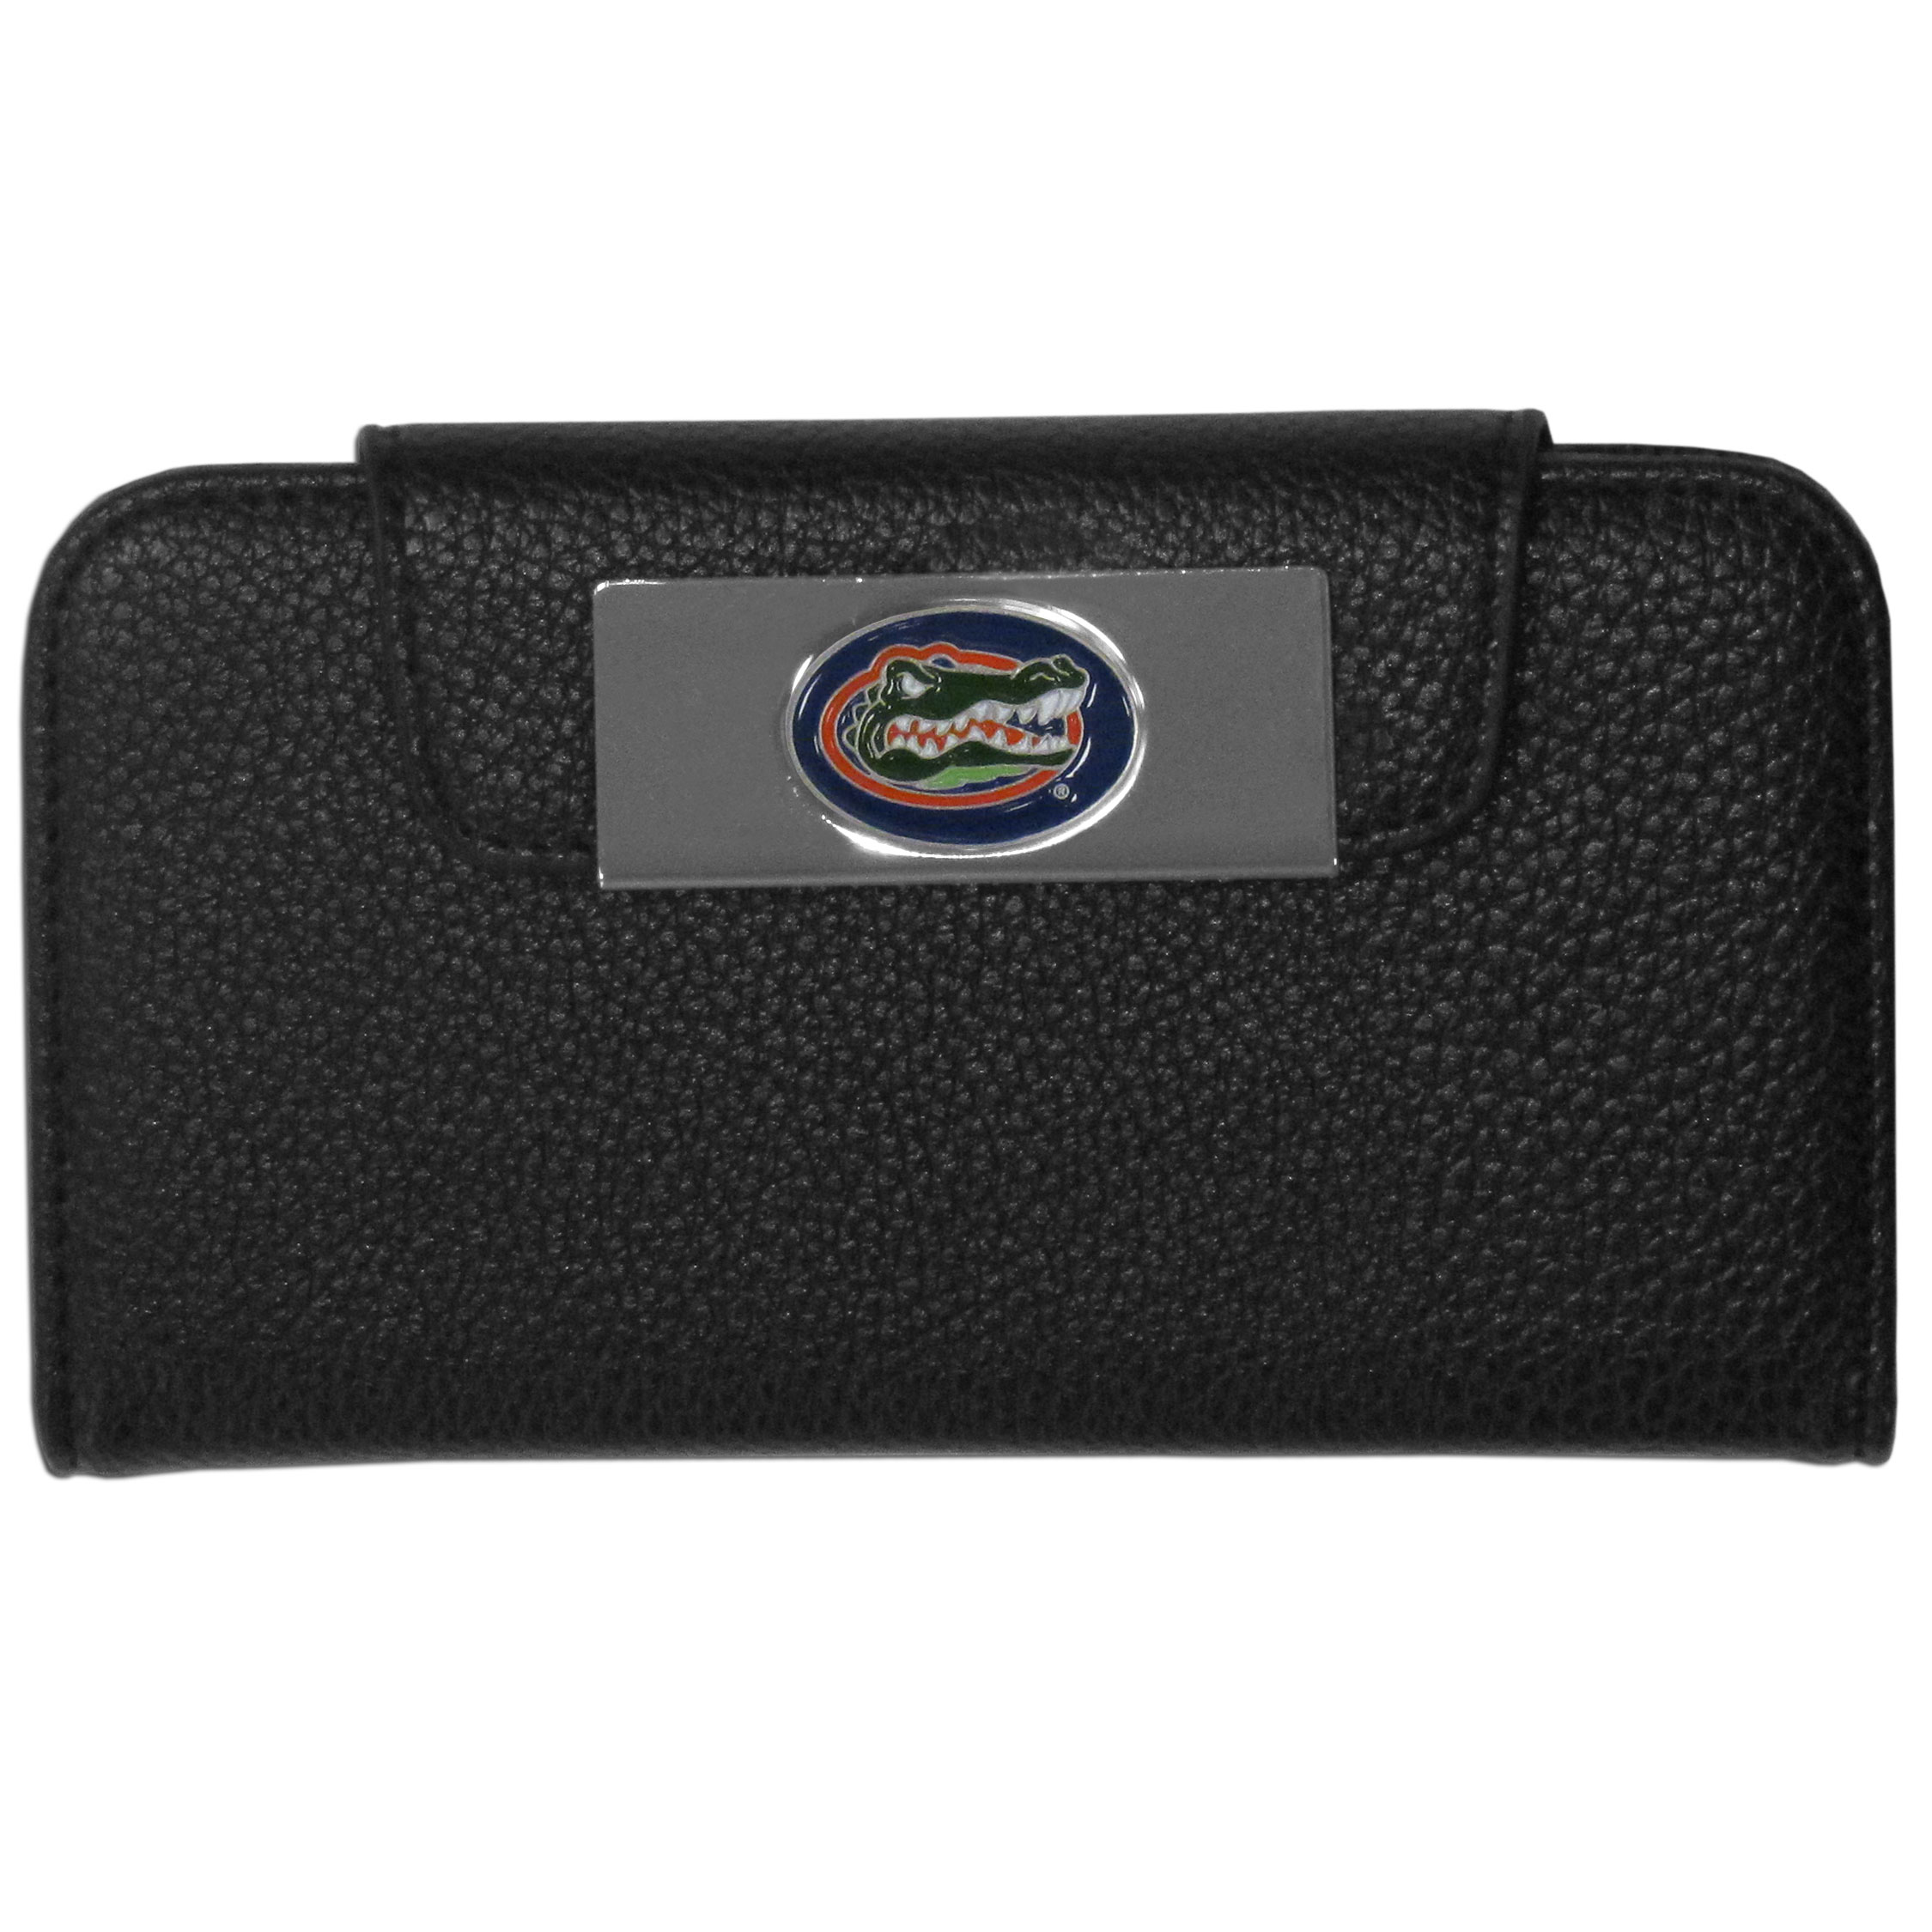 Florida Gators iPhone 5/5S Wallet Case - This new & wildly popular case is ideal for those who like to travel light! The stylish case has an inner hard shell that securely holds your phone while allowing complete access to the phone's functionality. The flip cover has slots for credit cards, business cards and identification. The magnetic flip cover has a metal Florida Gators emblem on a high polish chrome backing. Fits the iPhone 5/5S